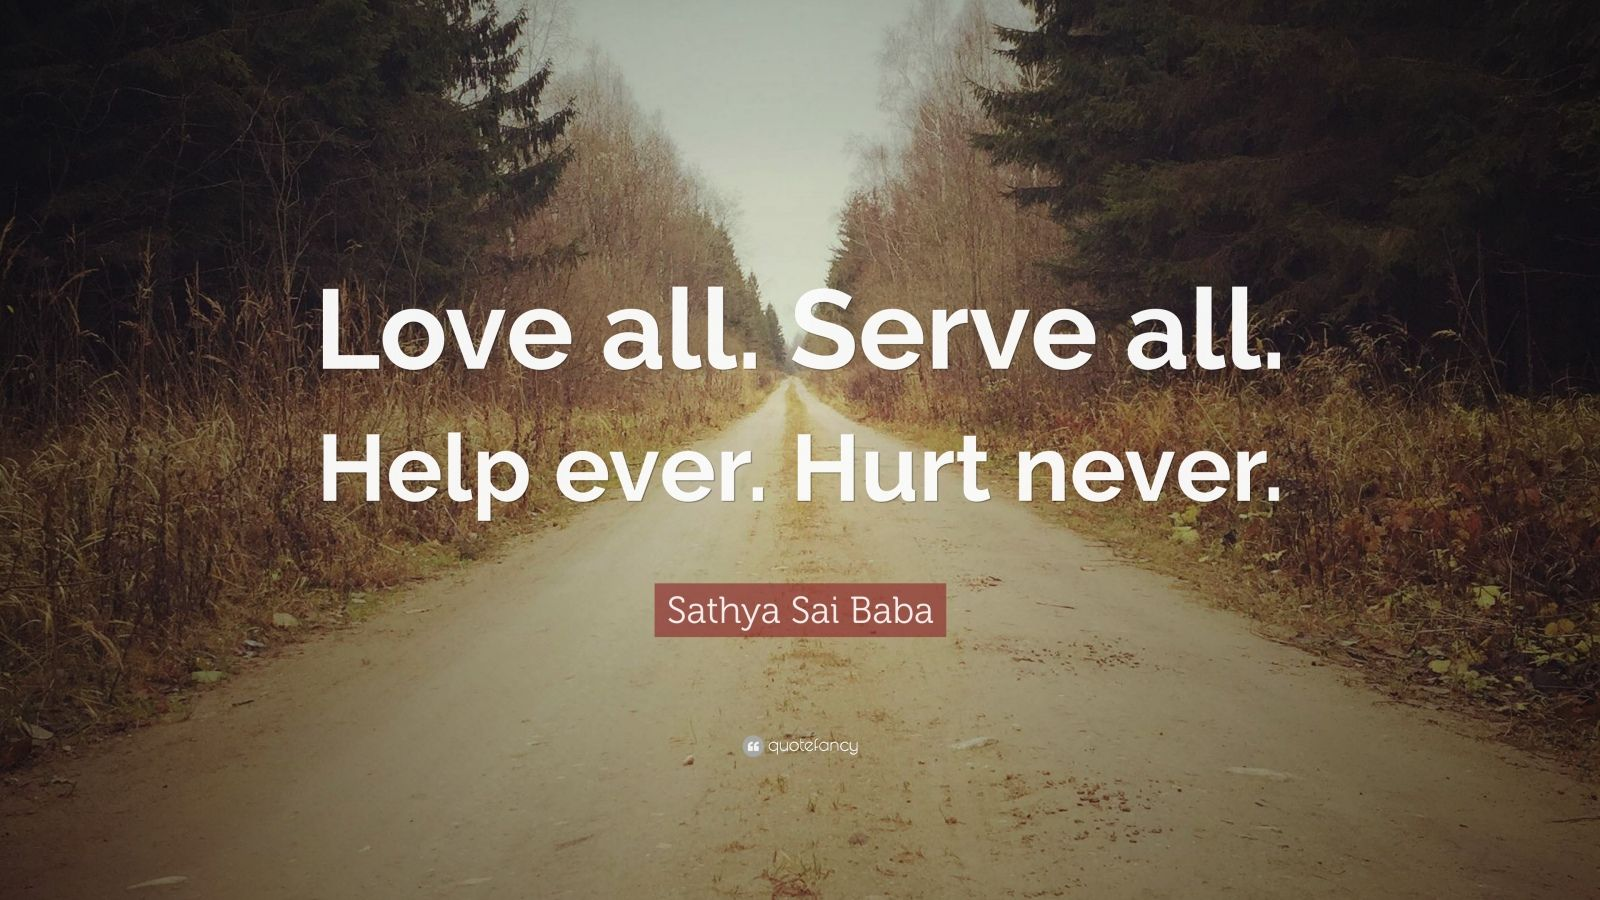 Sathya Sai Baba Quotes 100 Wallpapers Quotefancy